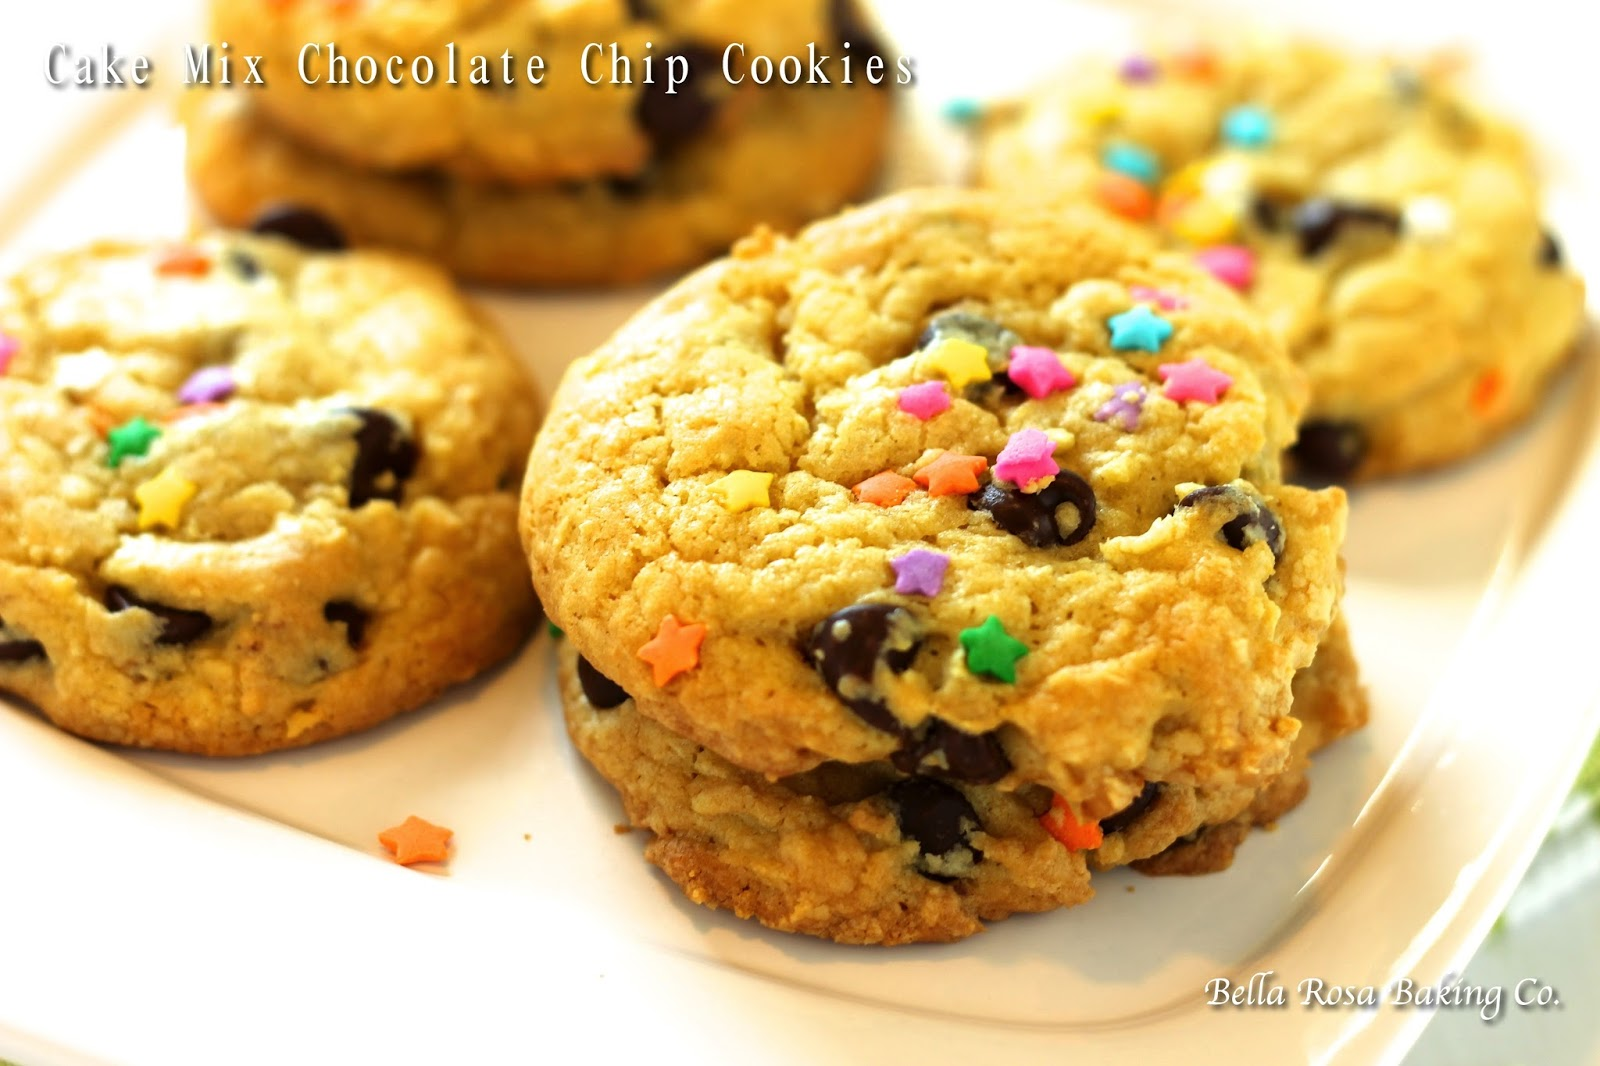 Duncan Hines Recipe Yellow Cake Mix With Chocolate Chip Cookies